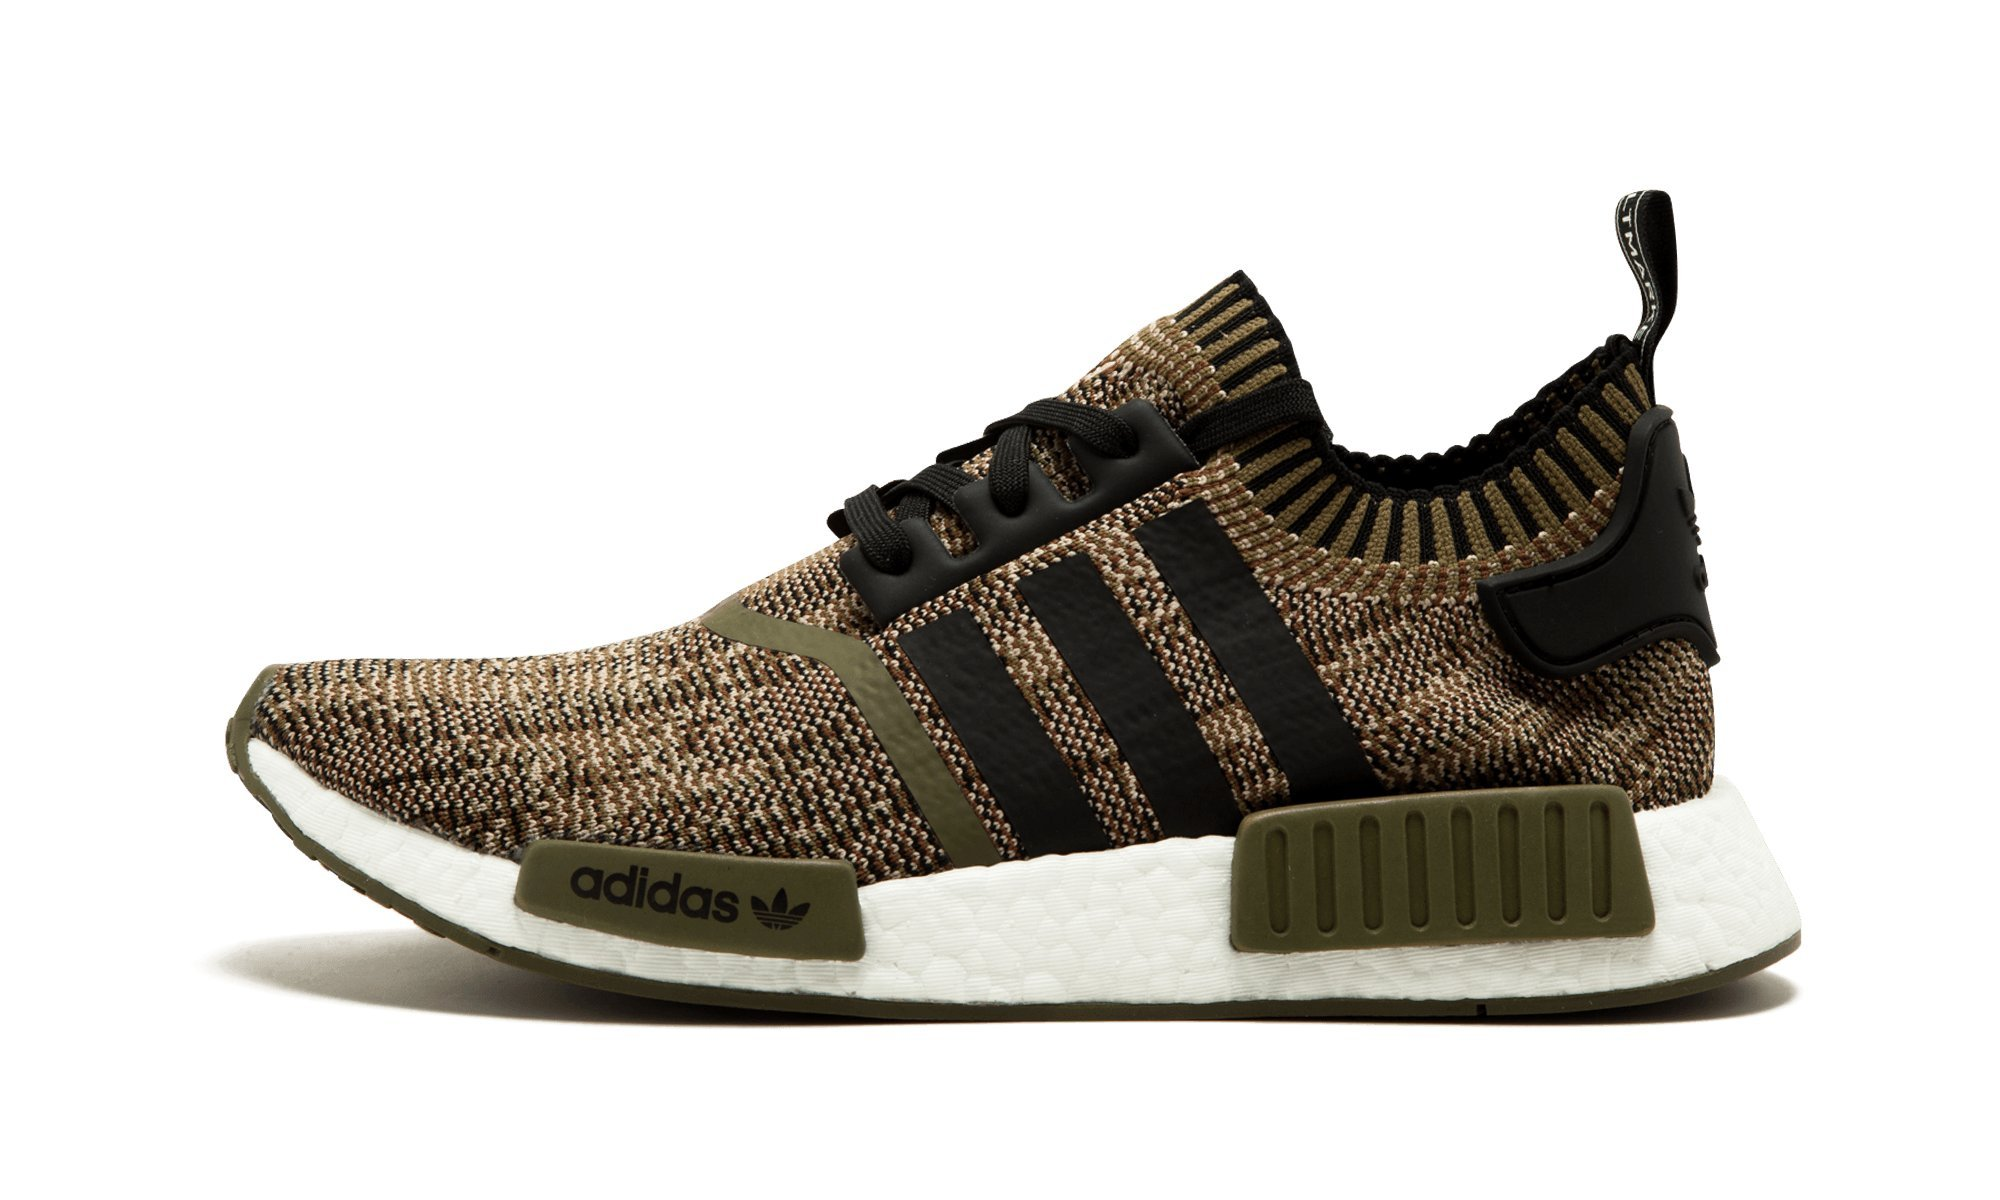 f6d40981cb09a Adidas Nmd R1 Pk Size 12 Top Deals   Lowest Price